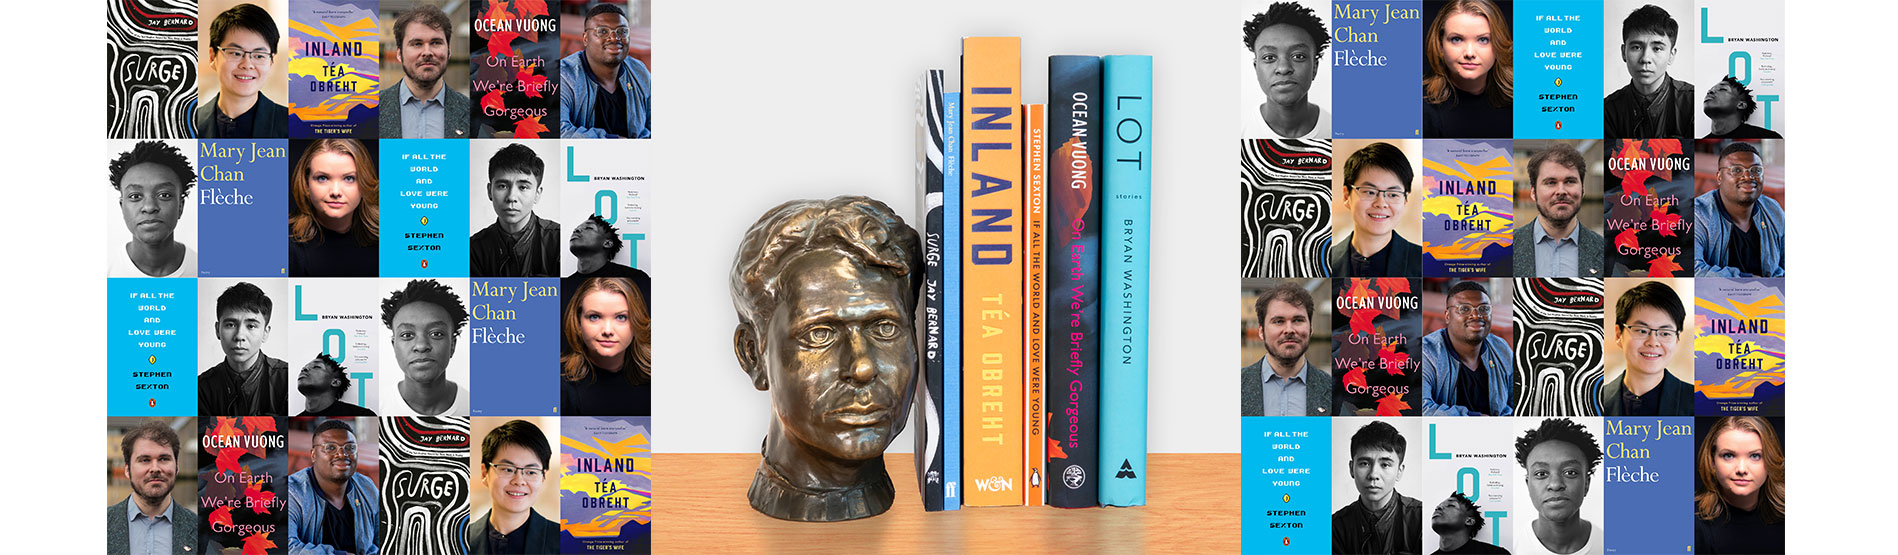 Swansea University Dylan Thomas Prize 2020 Shortlist Book Review Competition Goes Global!